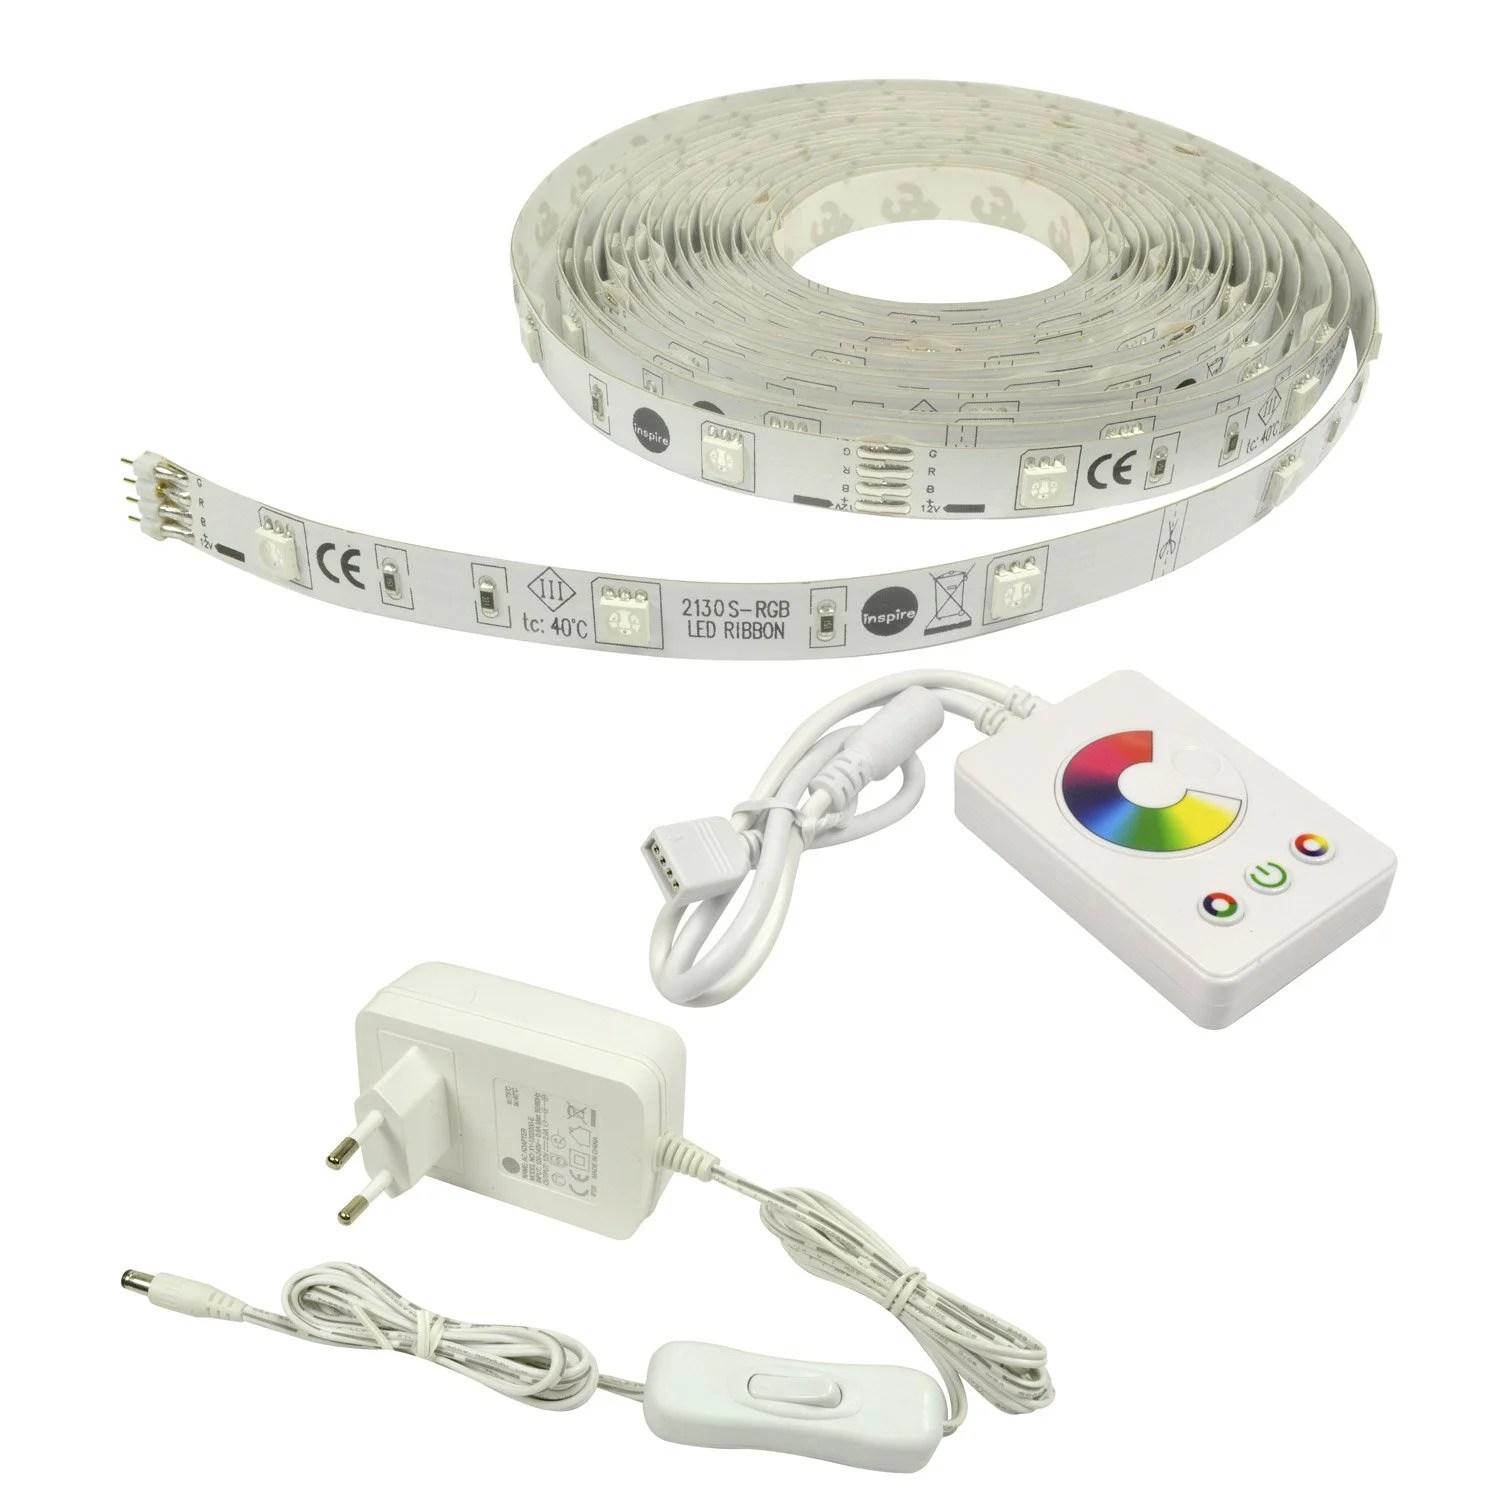 Ruban Led Leroy Merlin Kit Ruban Led Flexled 5m Led Intégrée Multicolore Leroy